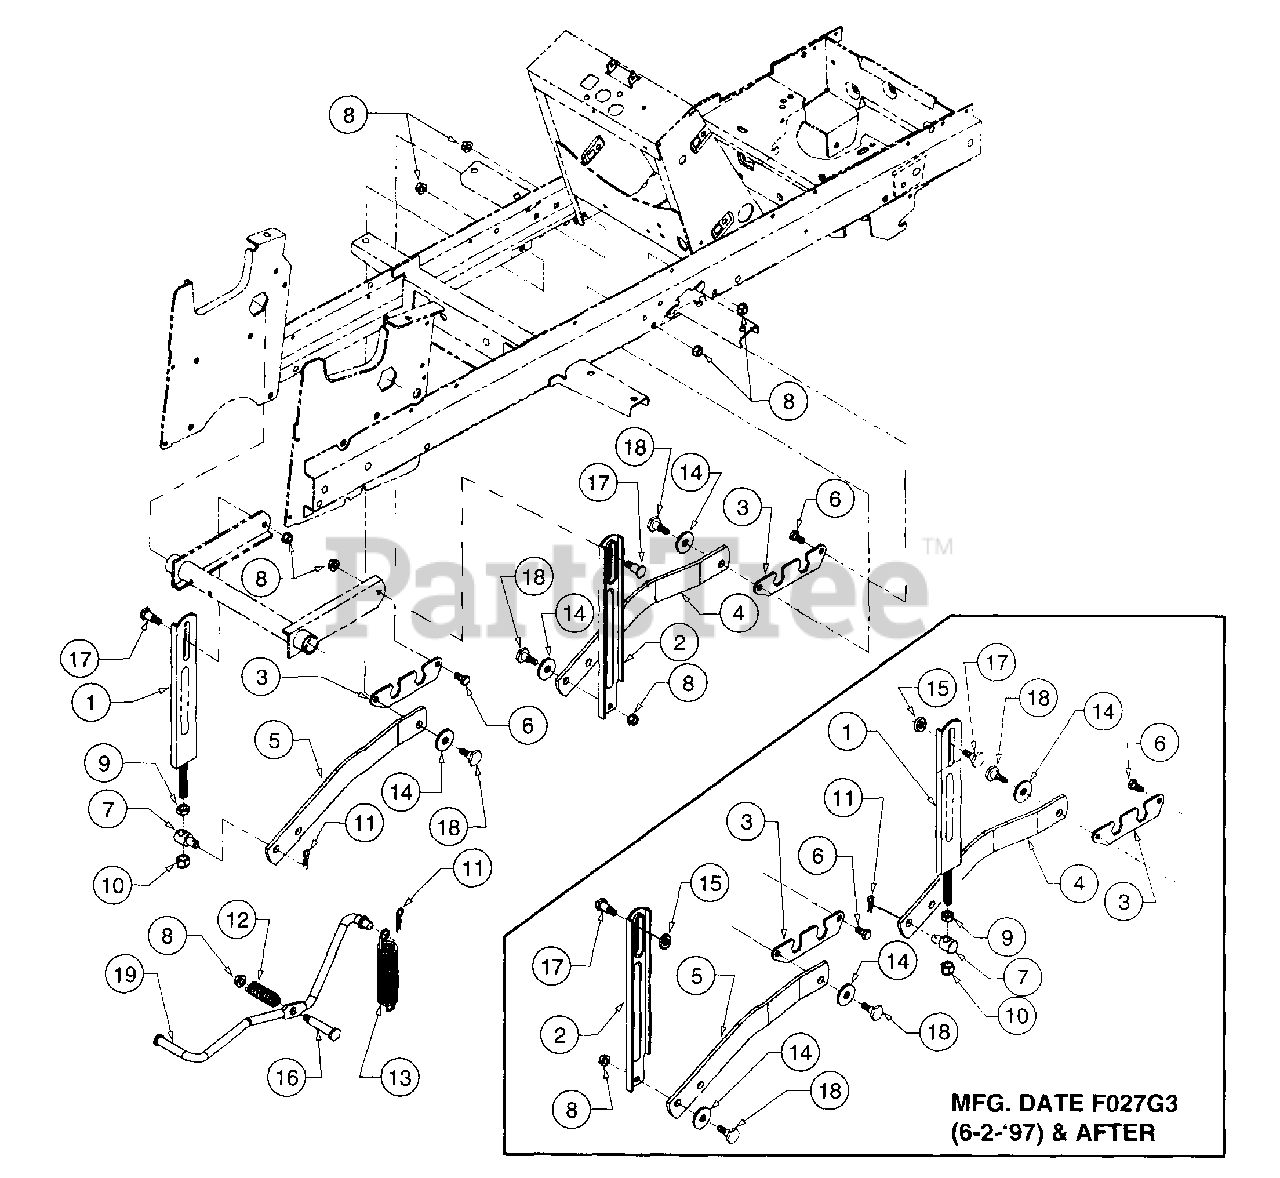 Cub Cadet Parts On The Implement Lift Hanger Diagram For 2185  136-288-100